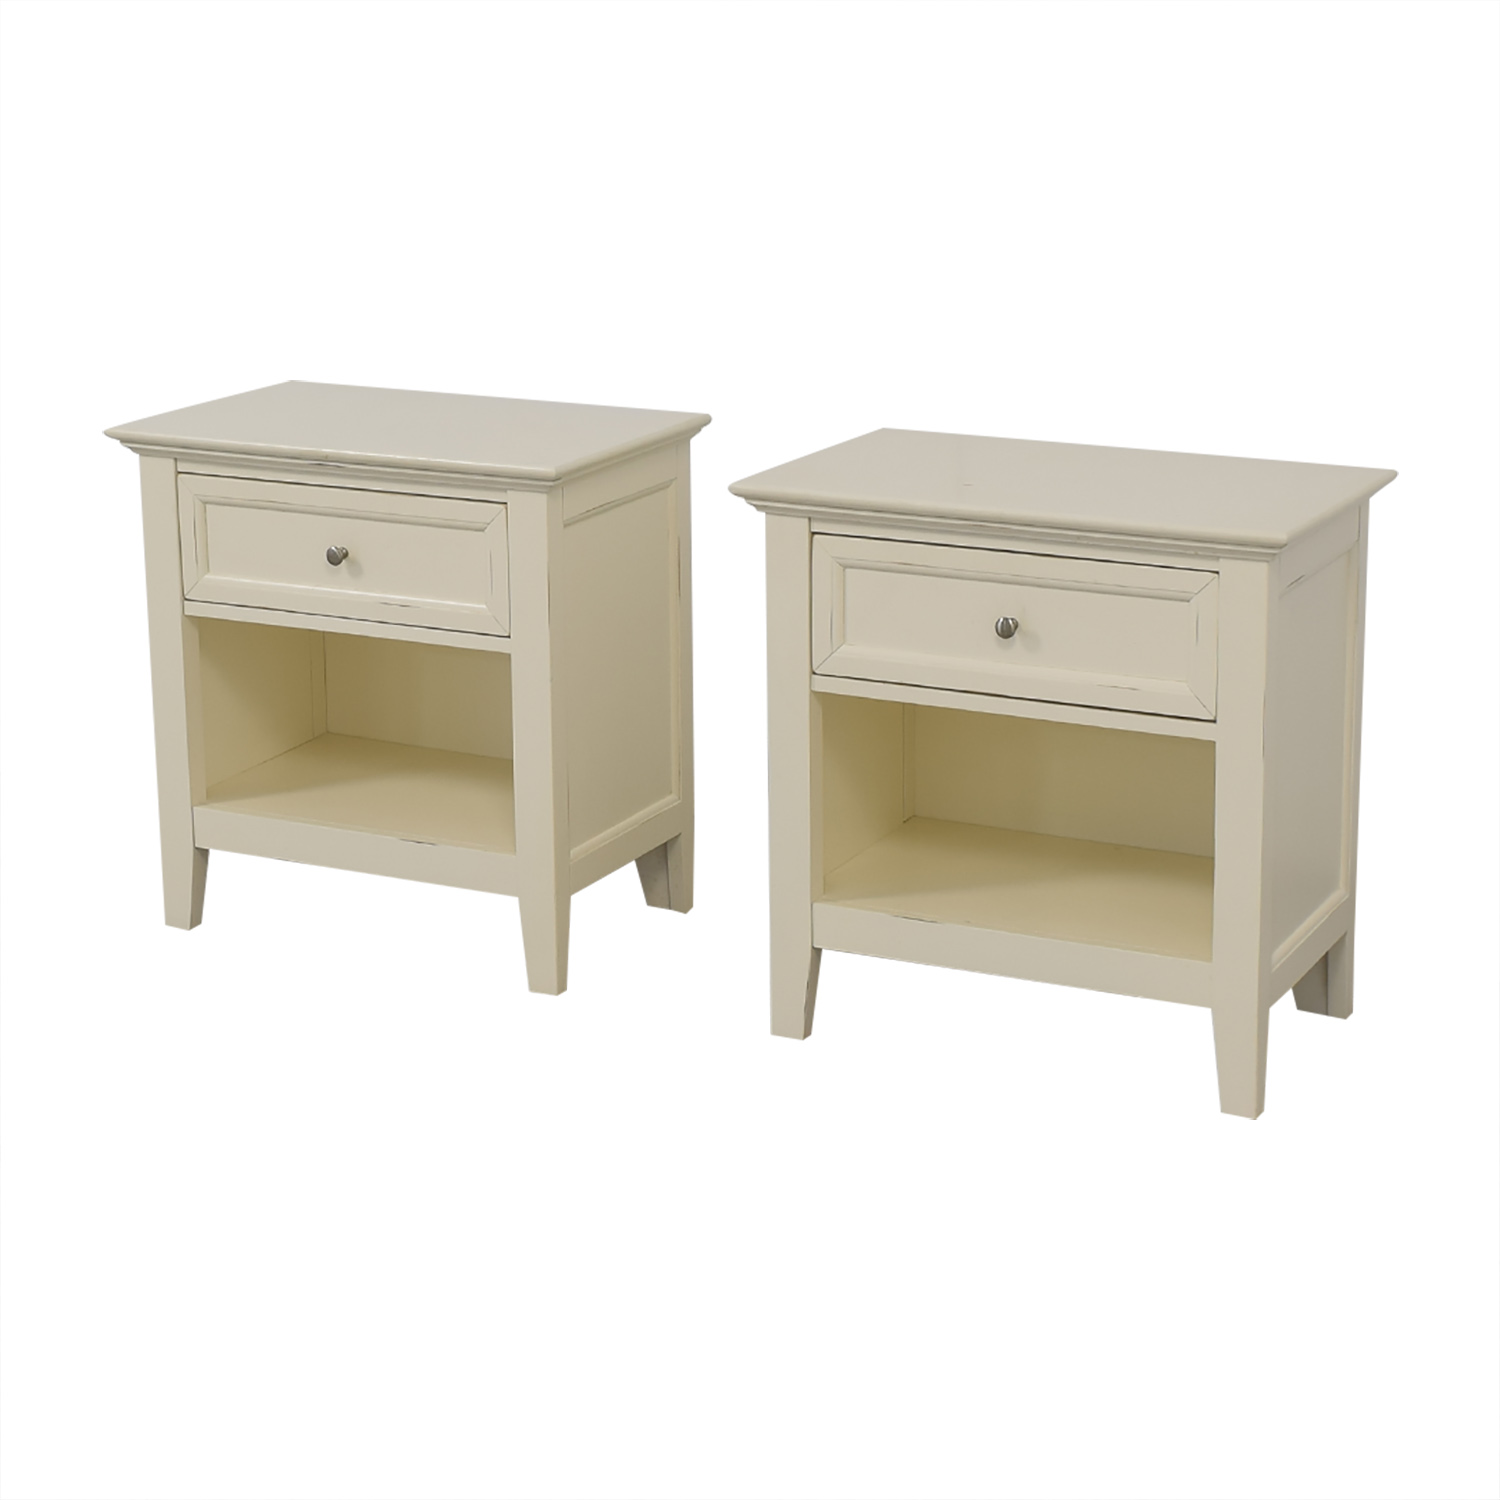 shop Macy's Sanibel Nightstands Macy's